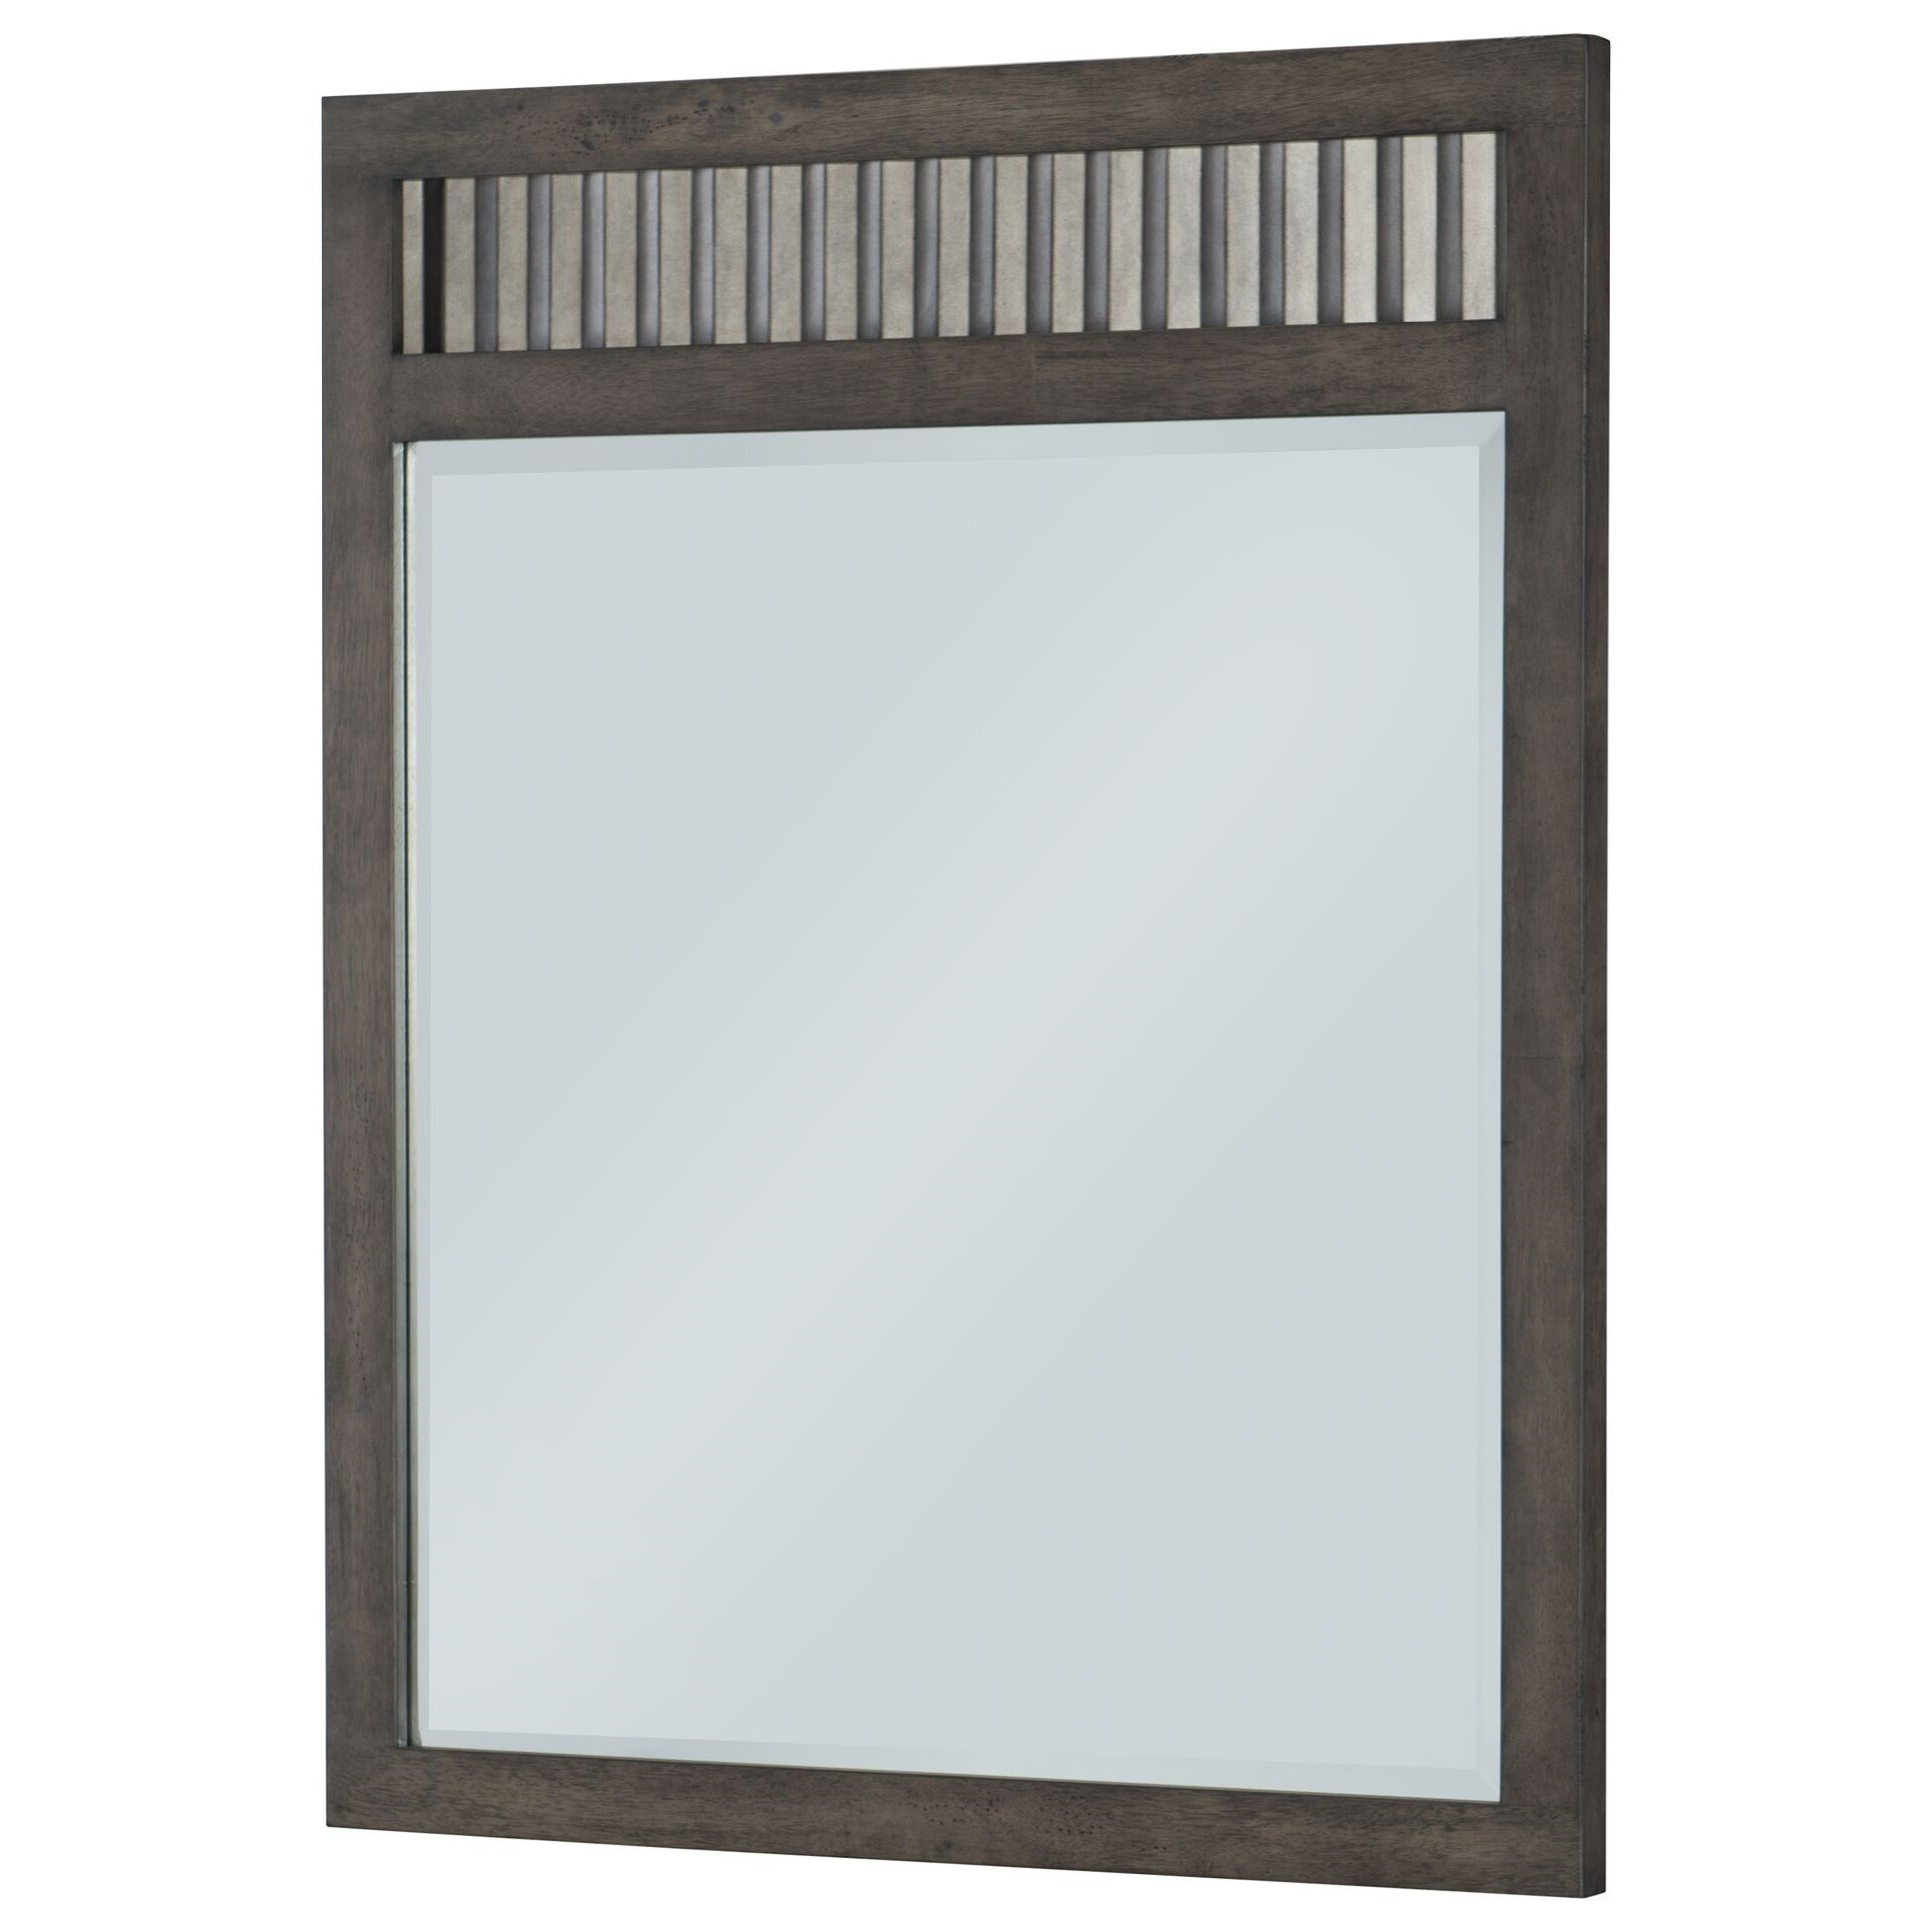 Bunkhouse Vertical Mirror  by Legacy Classic Kids at Johnny Janosik